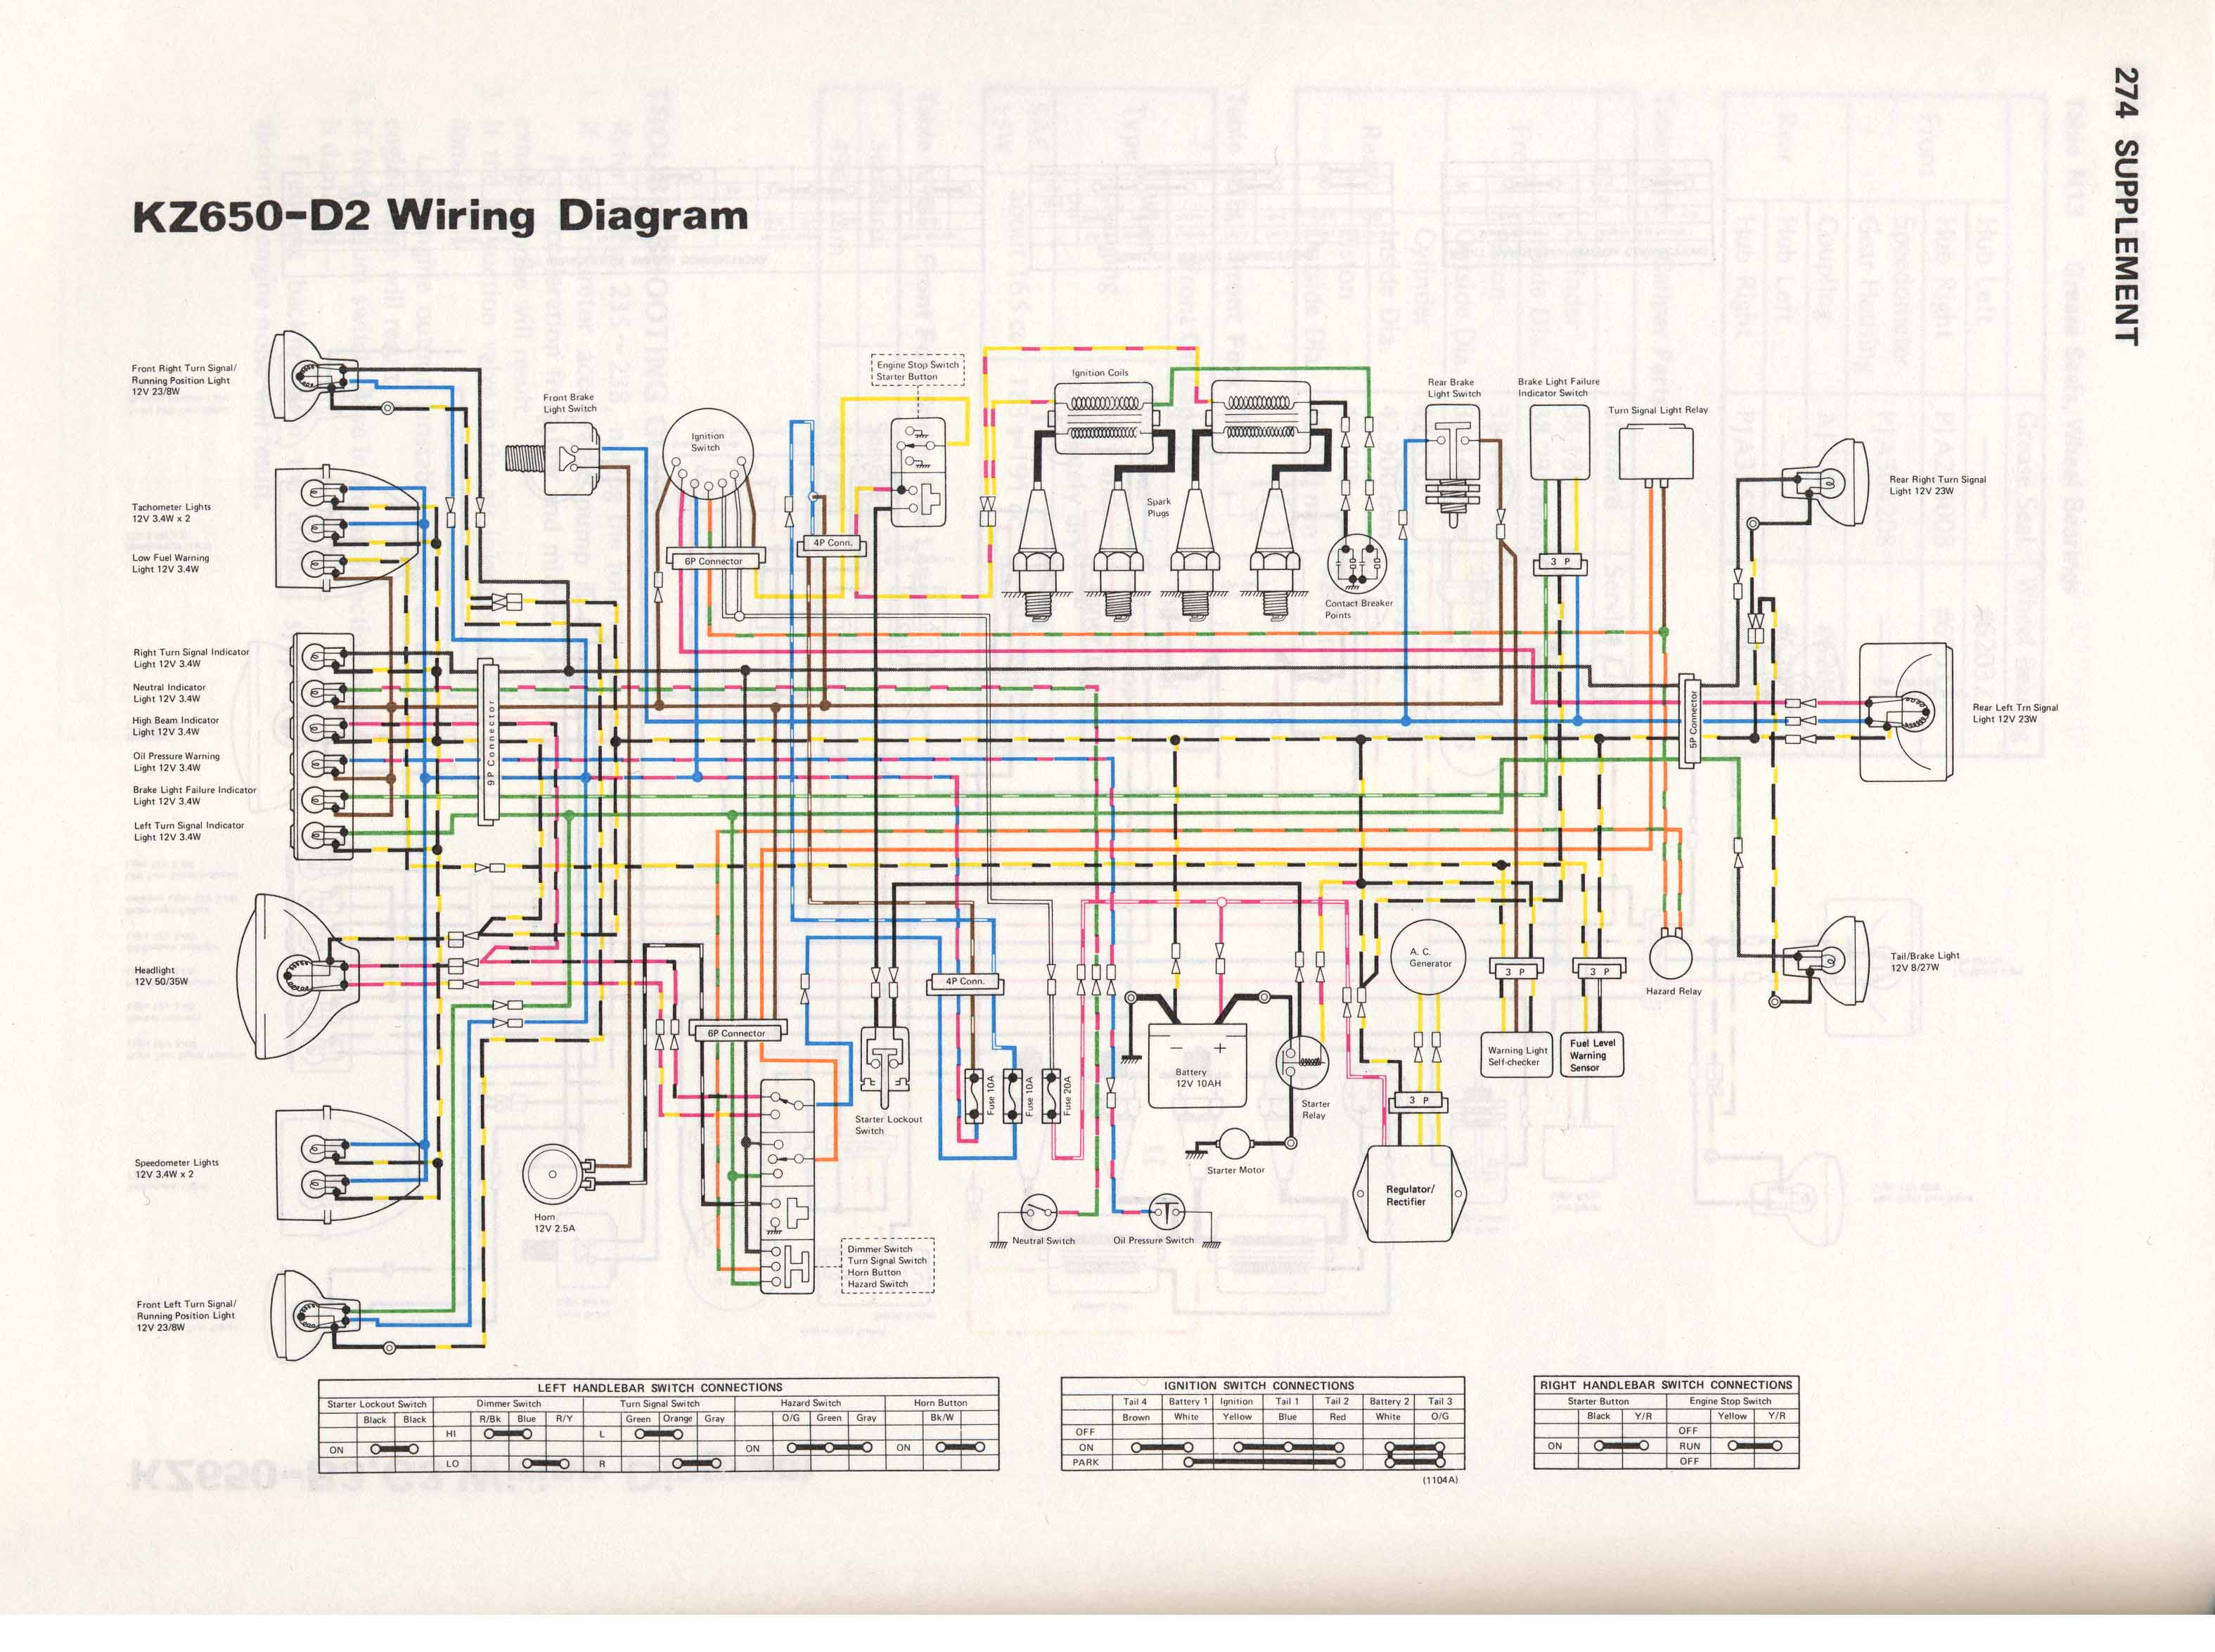 KZ650 D2 kz650 info d2 model z650 wiring diagram at reclaimingppi.co